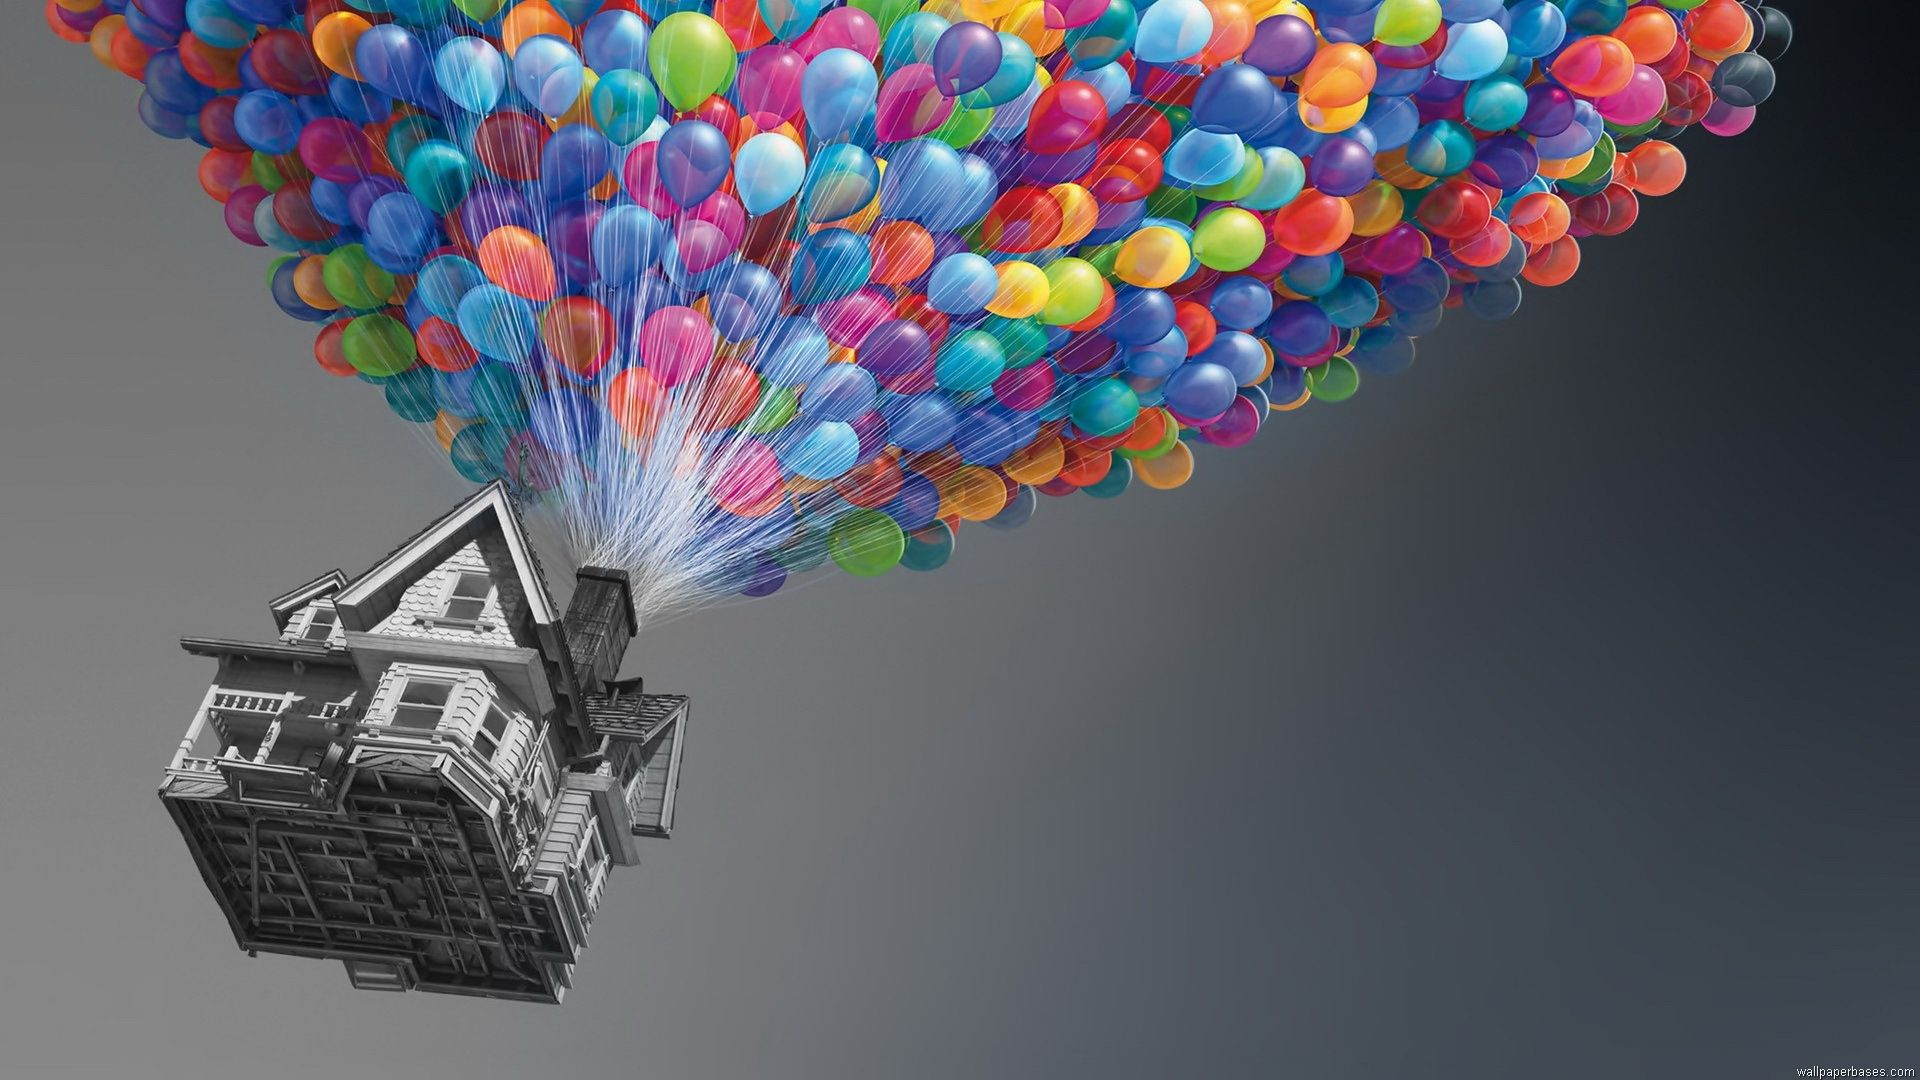 Colorful Up Home With Balloon Wallpaper #3554 Wallpaper